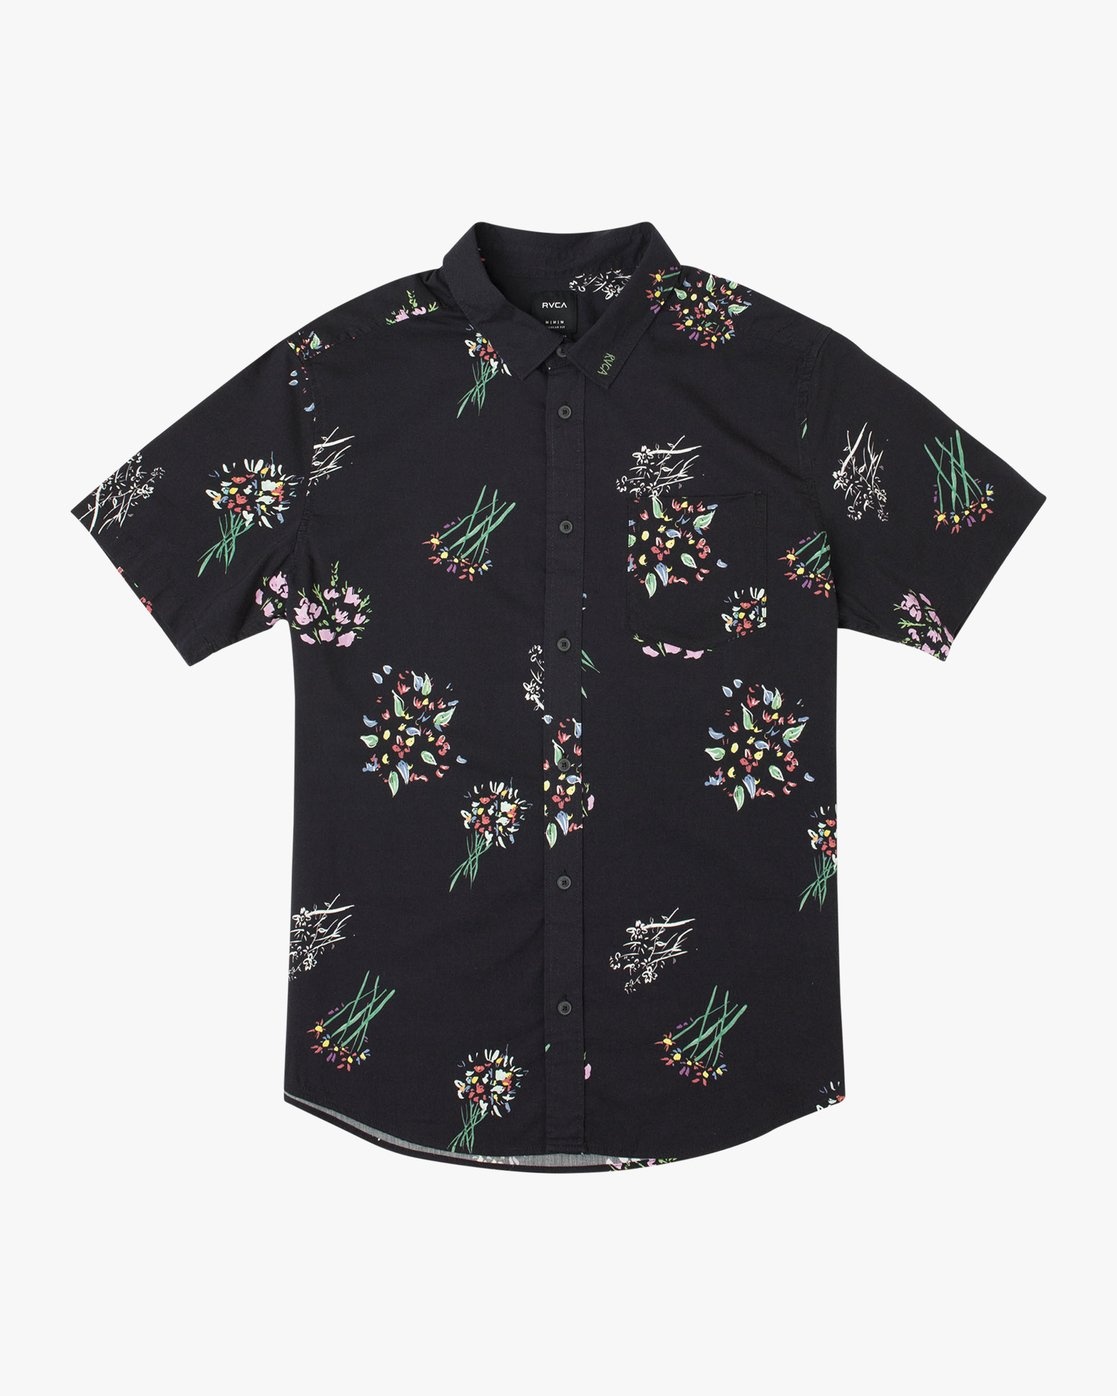 0 AR Lottie Flowers Button-Up Shirt Black M561URAL RVCA